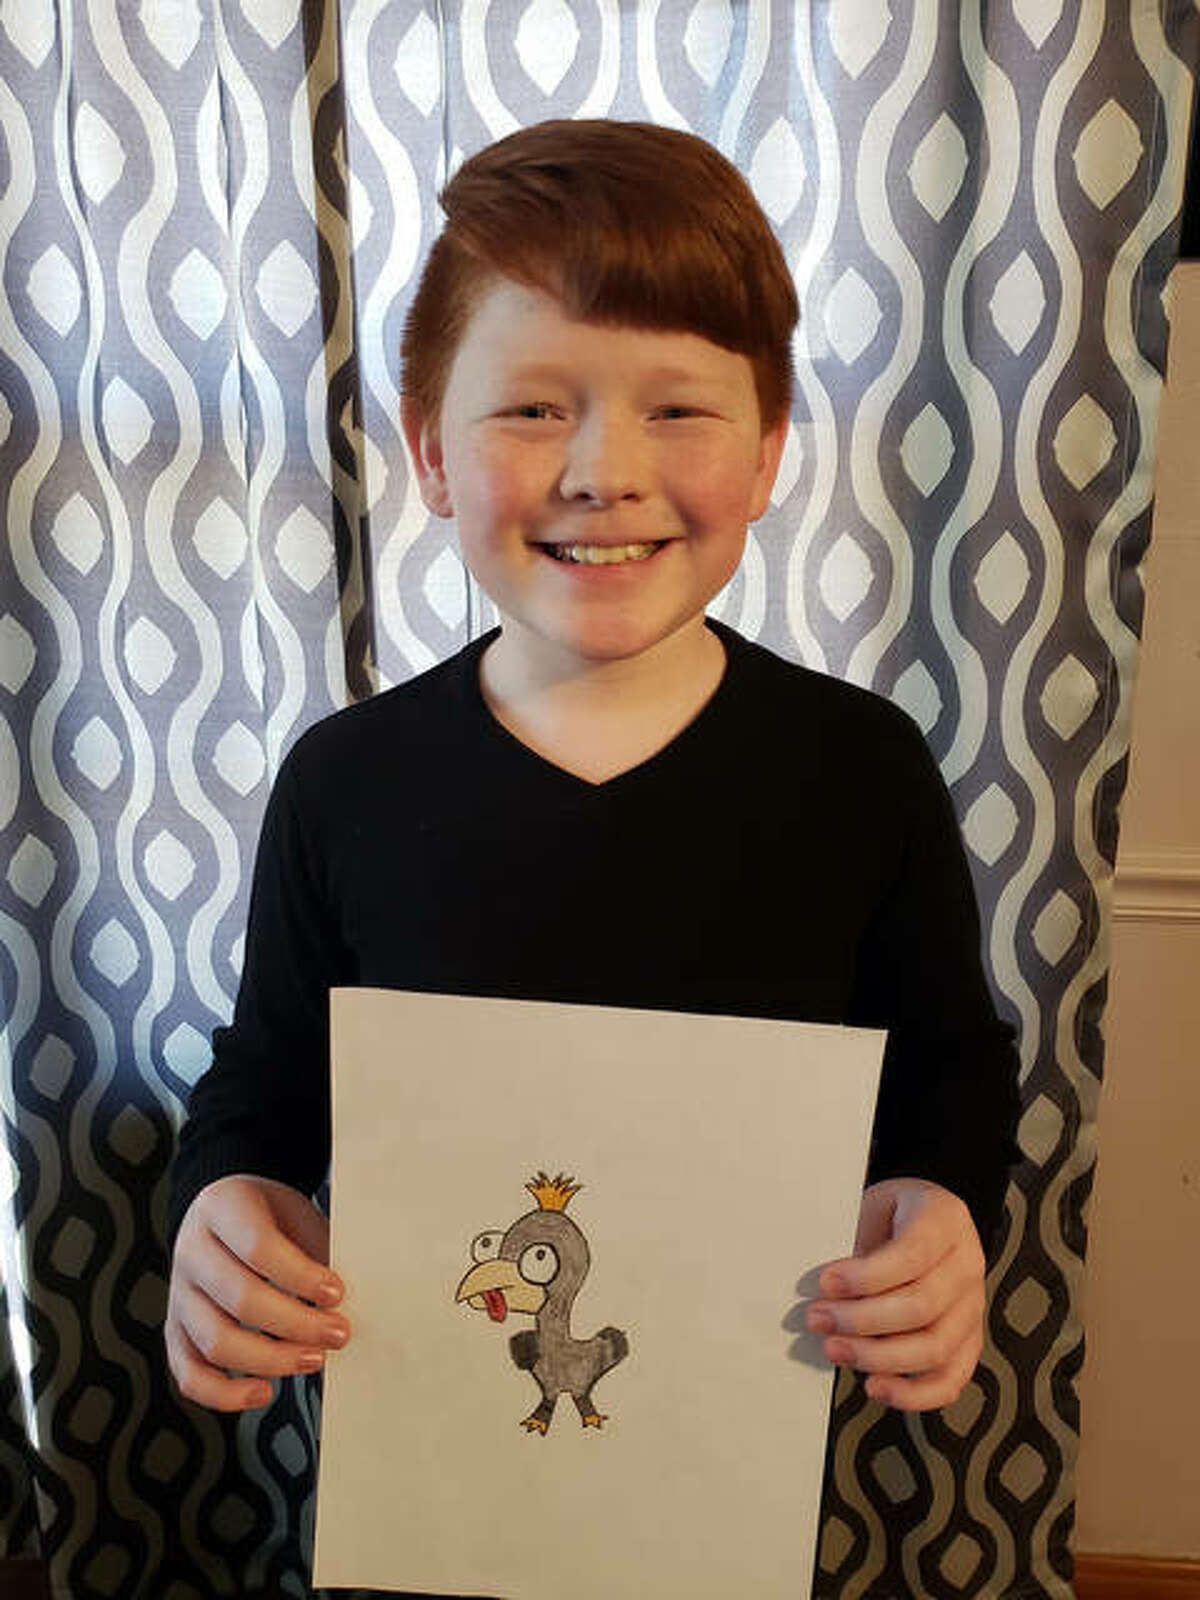 Nick Rekowski, 11, shows off his creation, Kevin the Bird. Nick's design will be converted to a plush toy and sold in IKEA stores worldwide later this year.